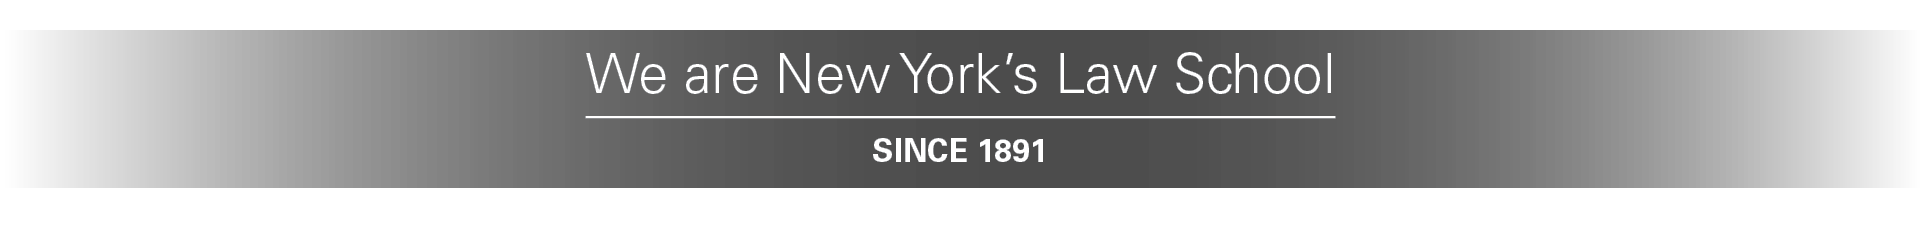 We are New York's Law School, Since 1891